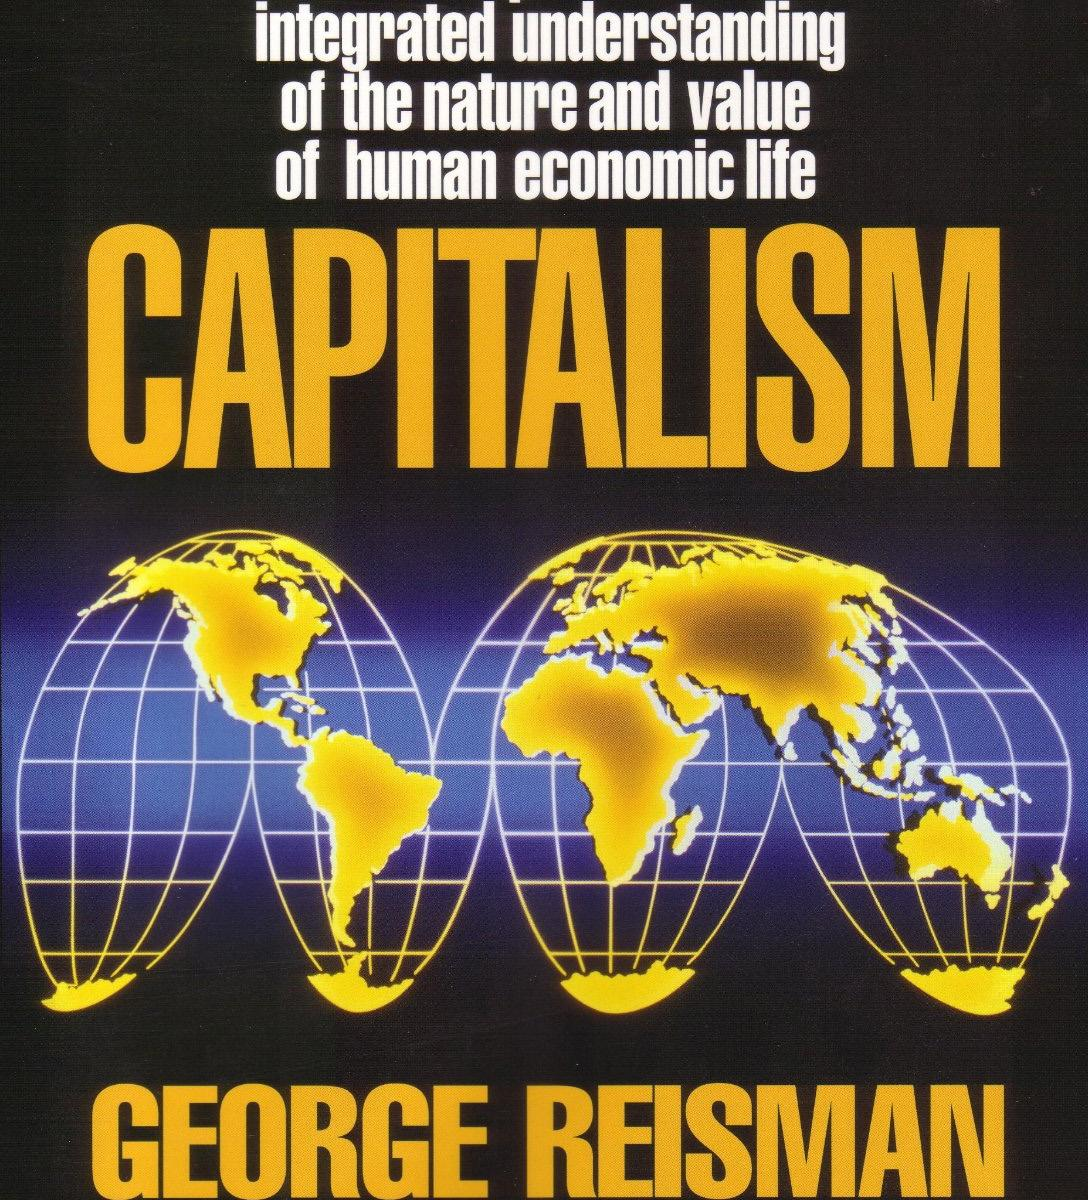 Capitalism a treatise on economics mises institute fandeluxe Image collections